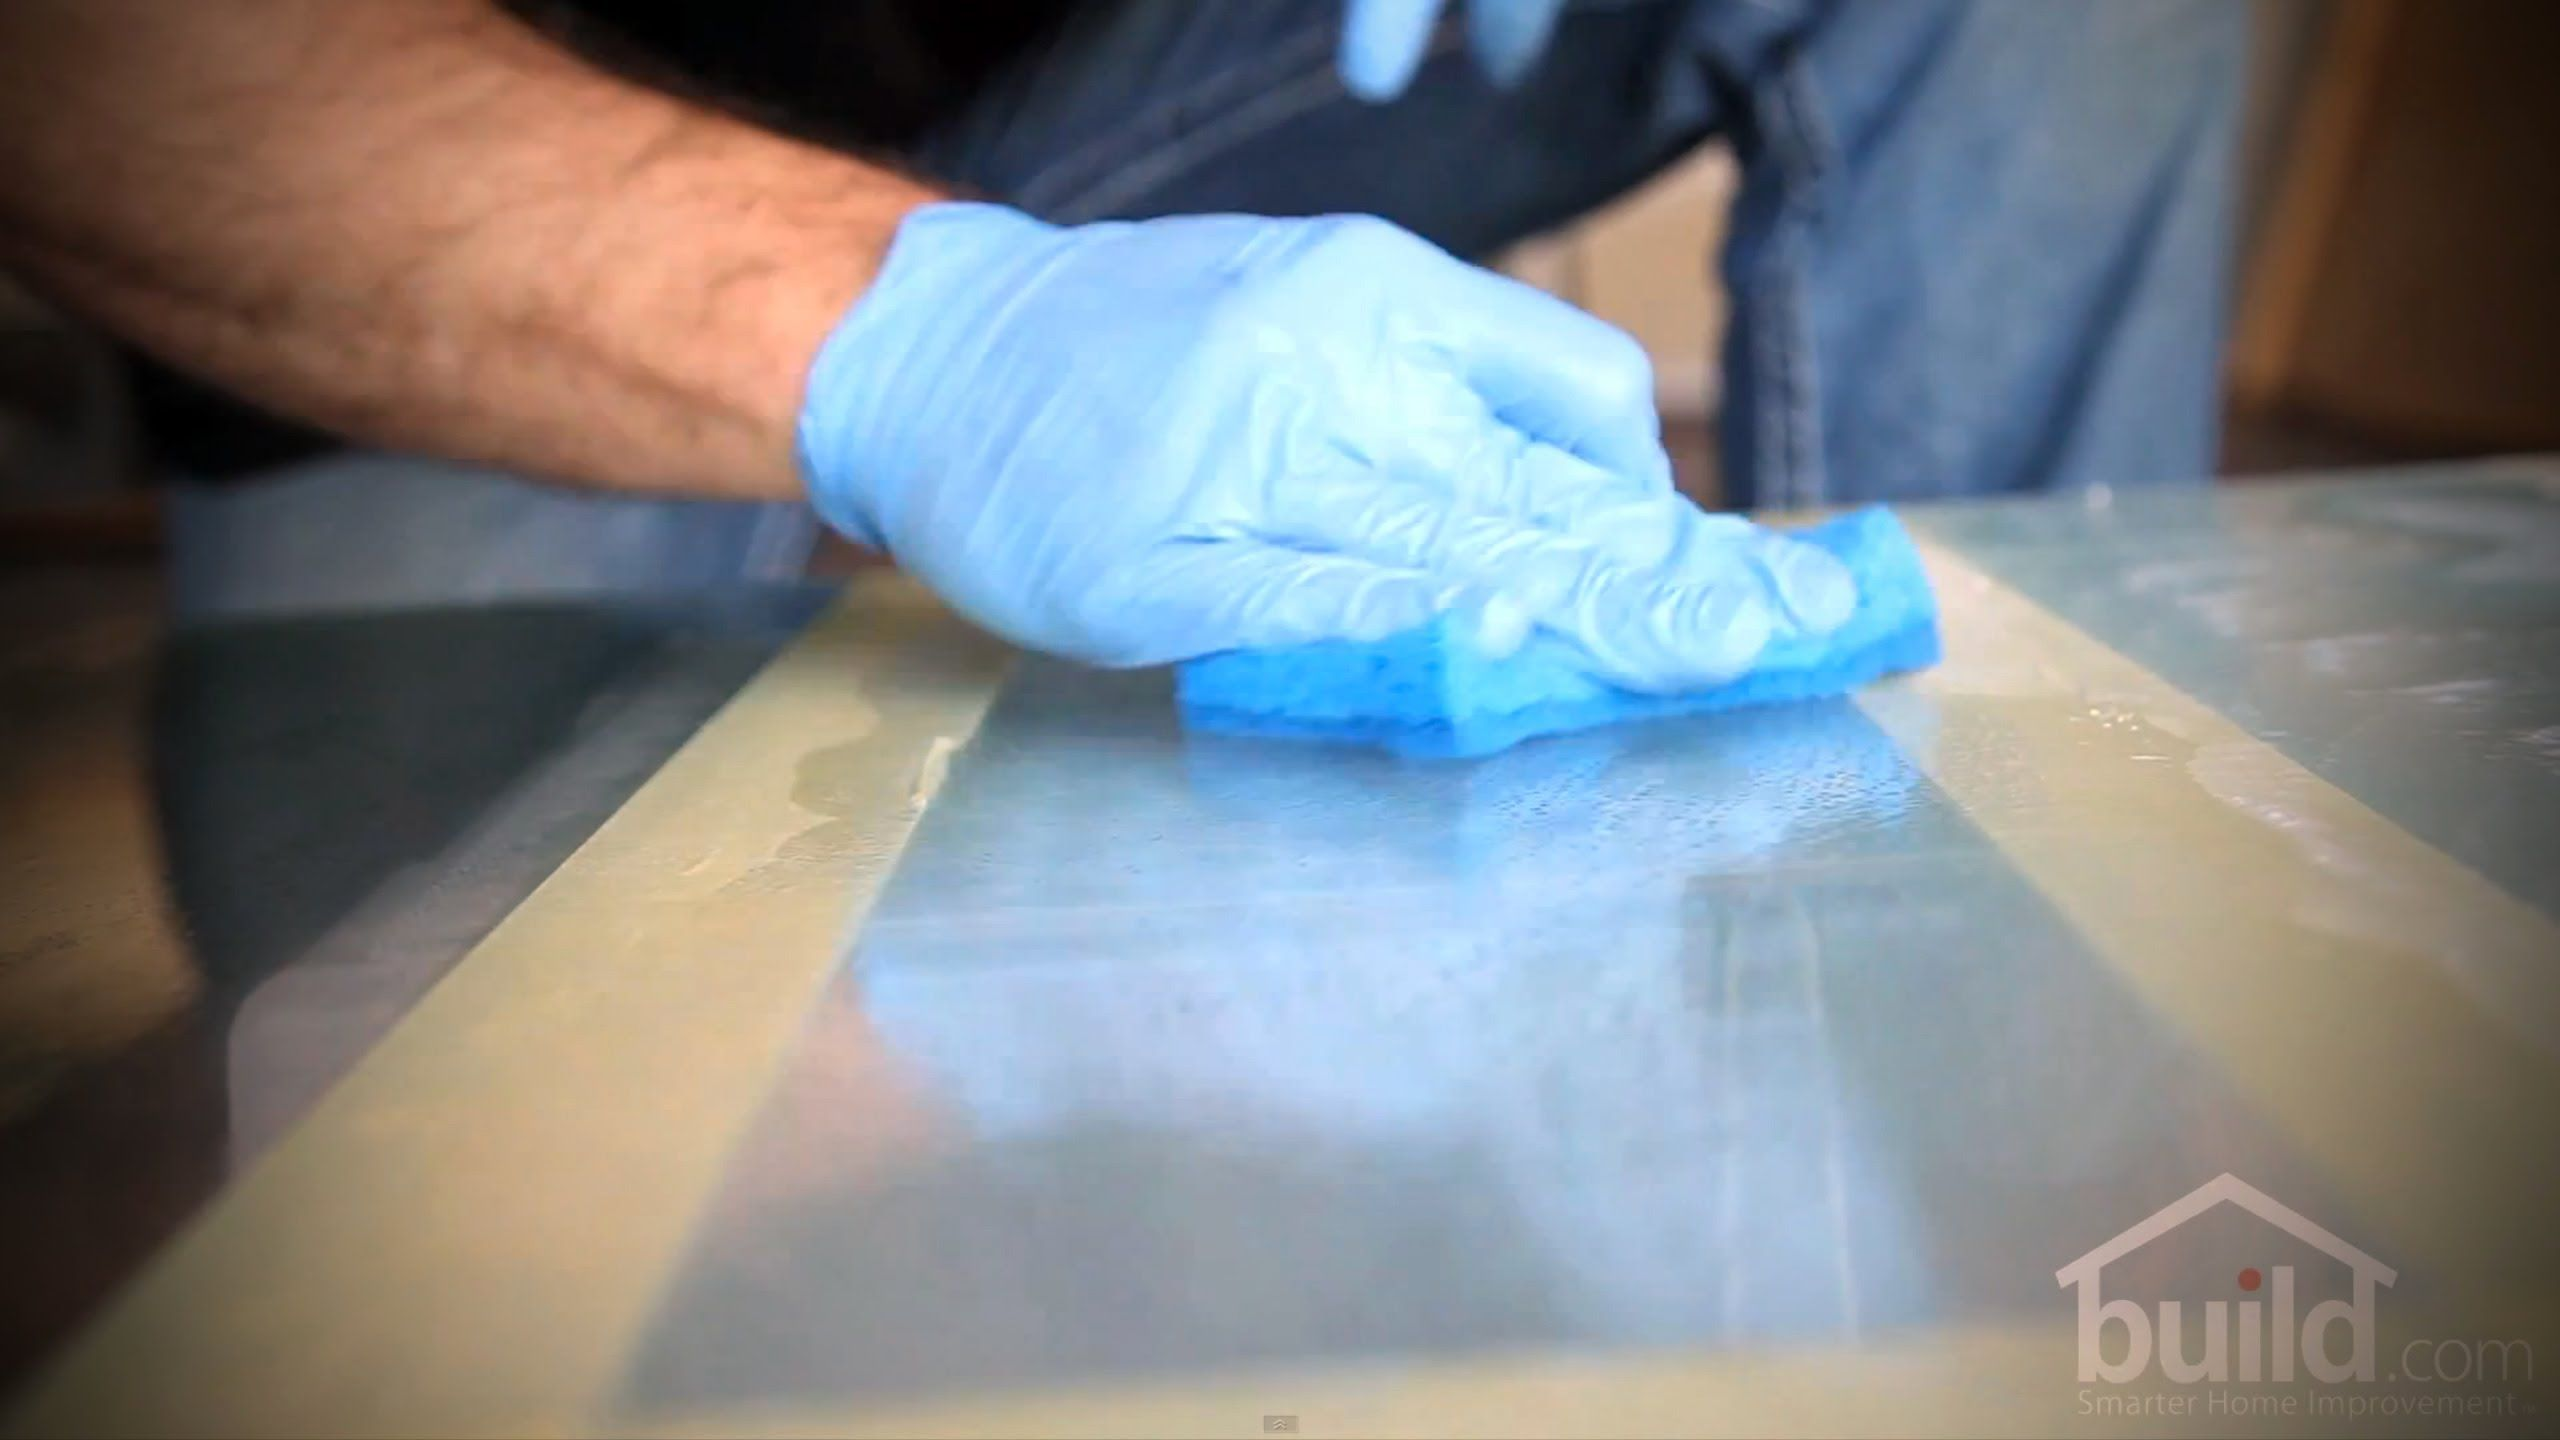 How To Remove Hard Water Stains Build Oxalic Acids Was The